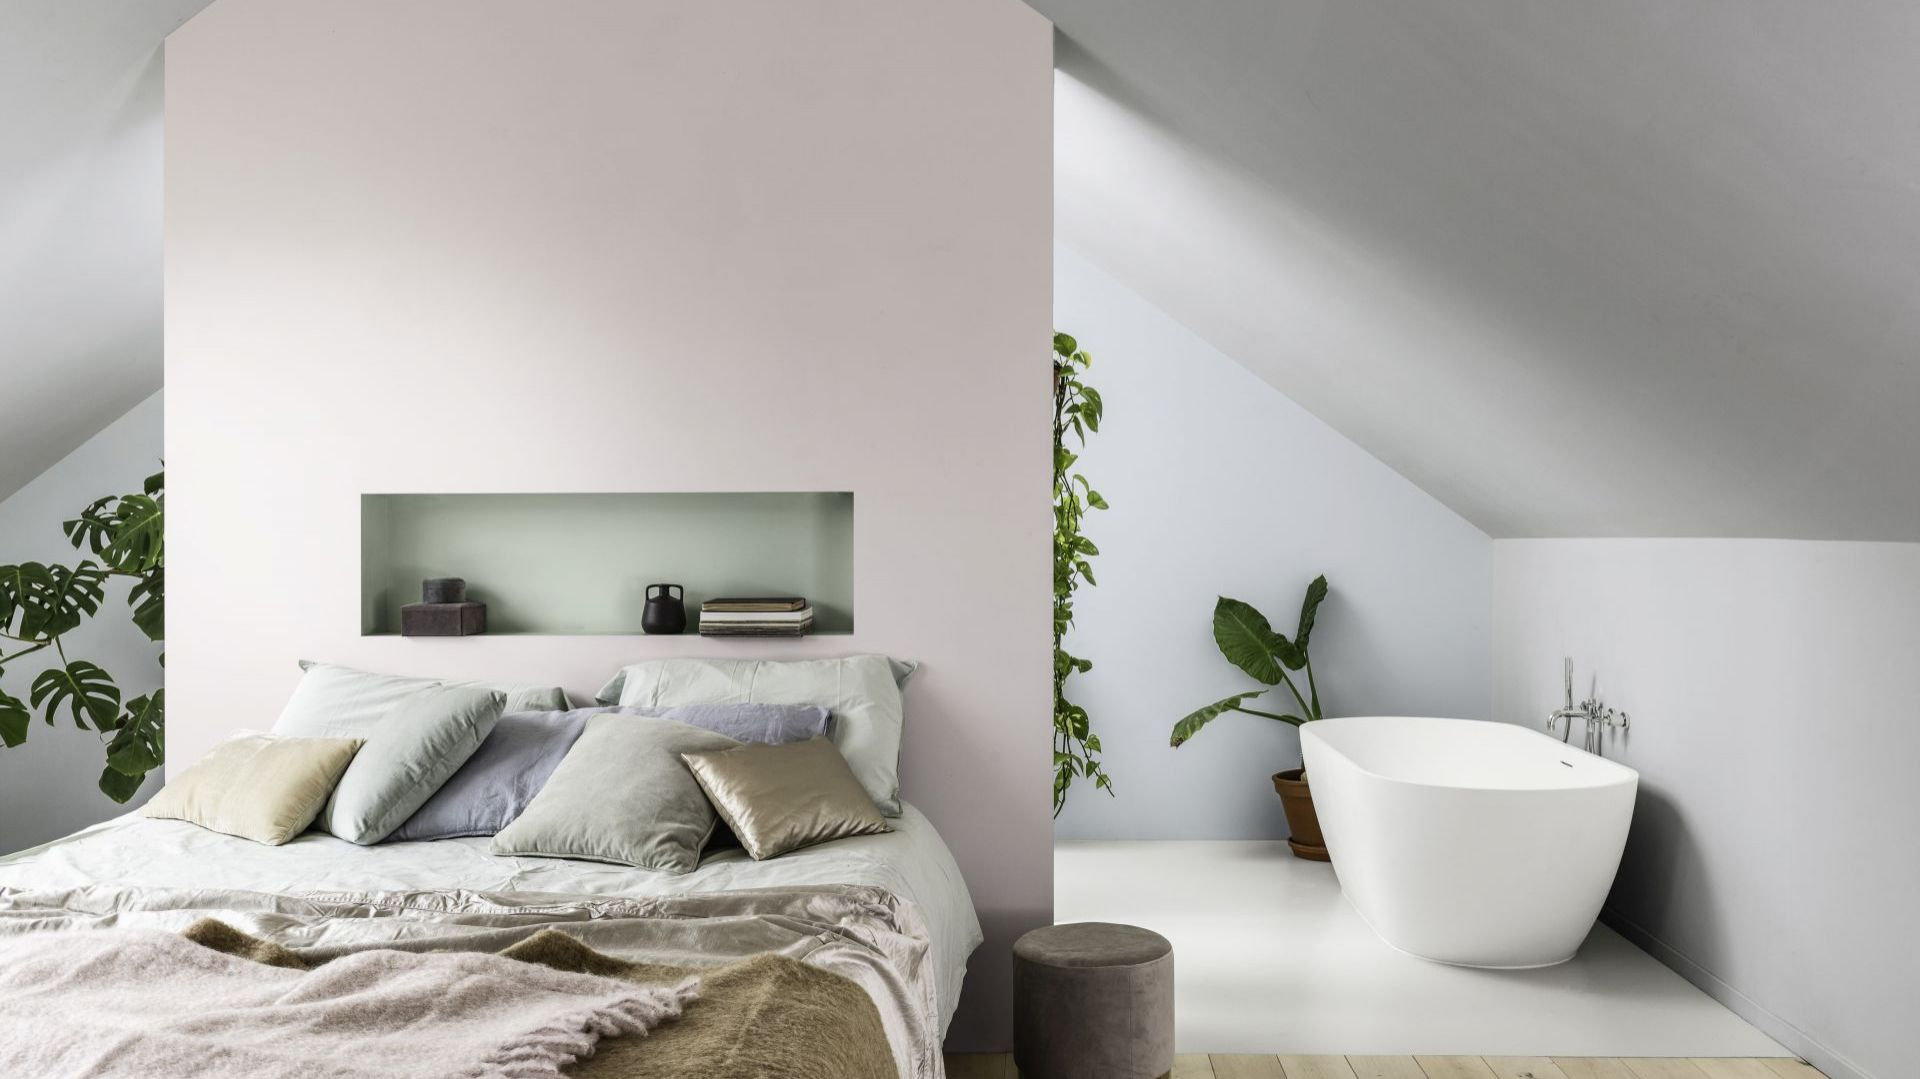 AkzoNobel_Dulux-Colour-Futures-Colour-of-the-Year-2020-A-home-for-care-Bedroom-Inspiration-Global-69P.jpg